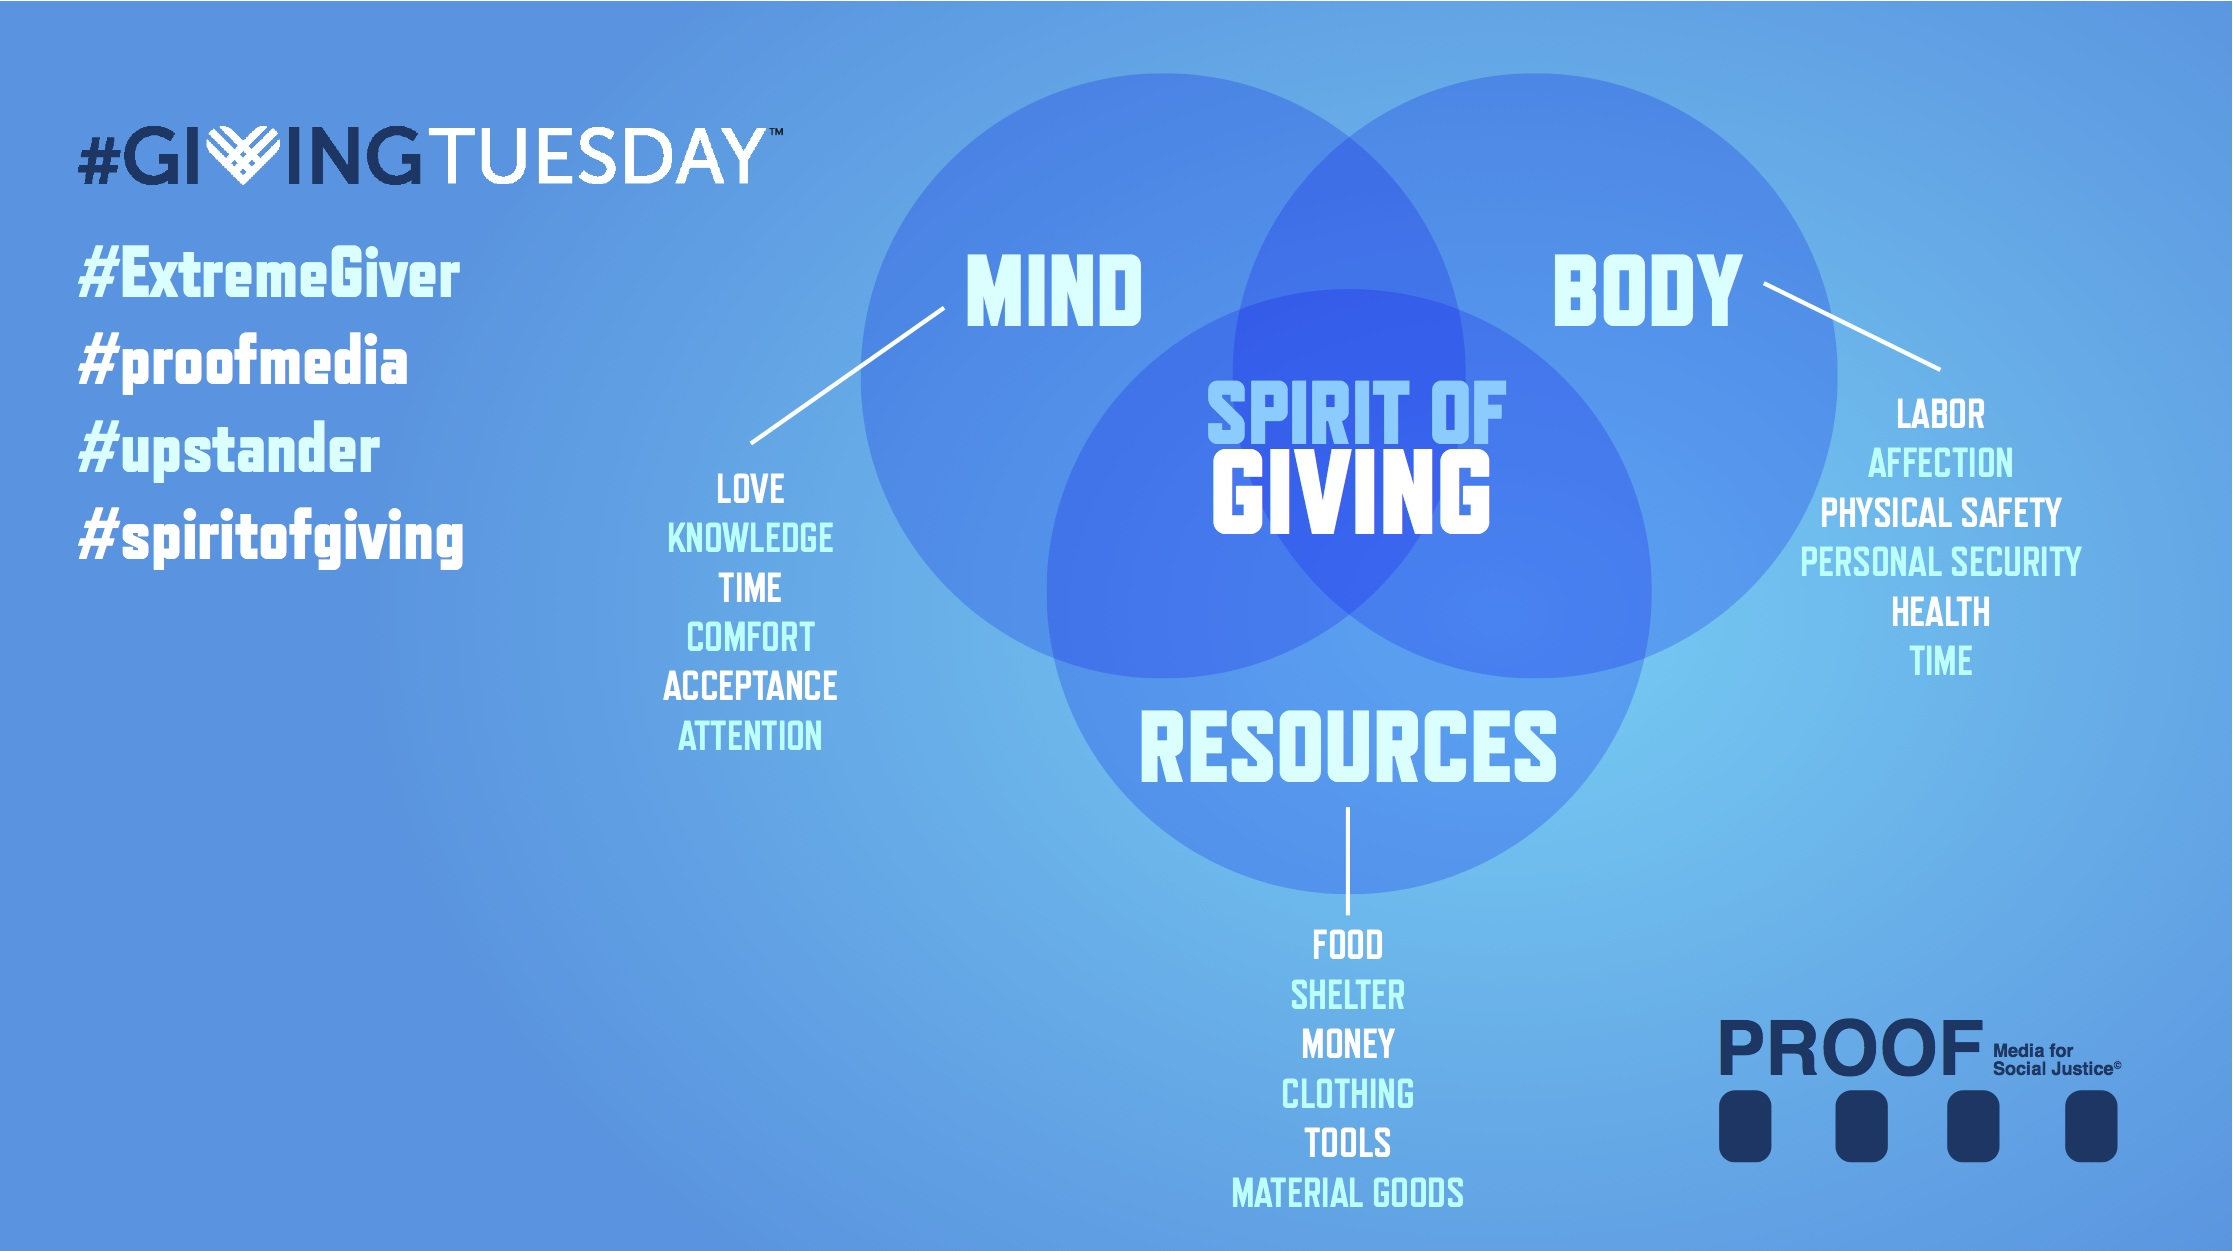 GIVING_TUESDAY_PROOF